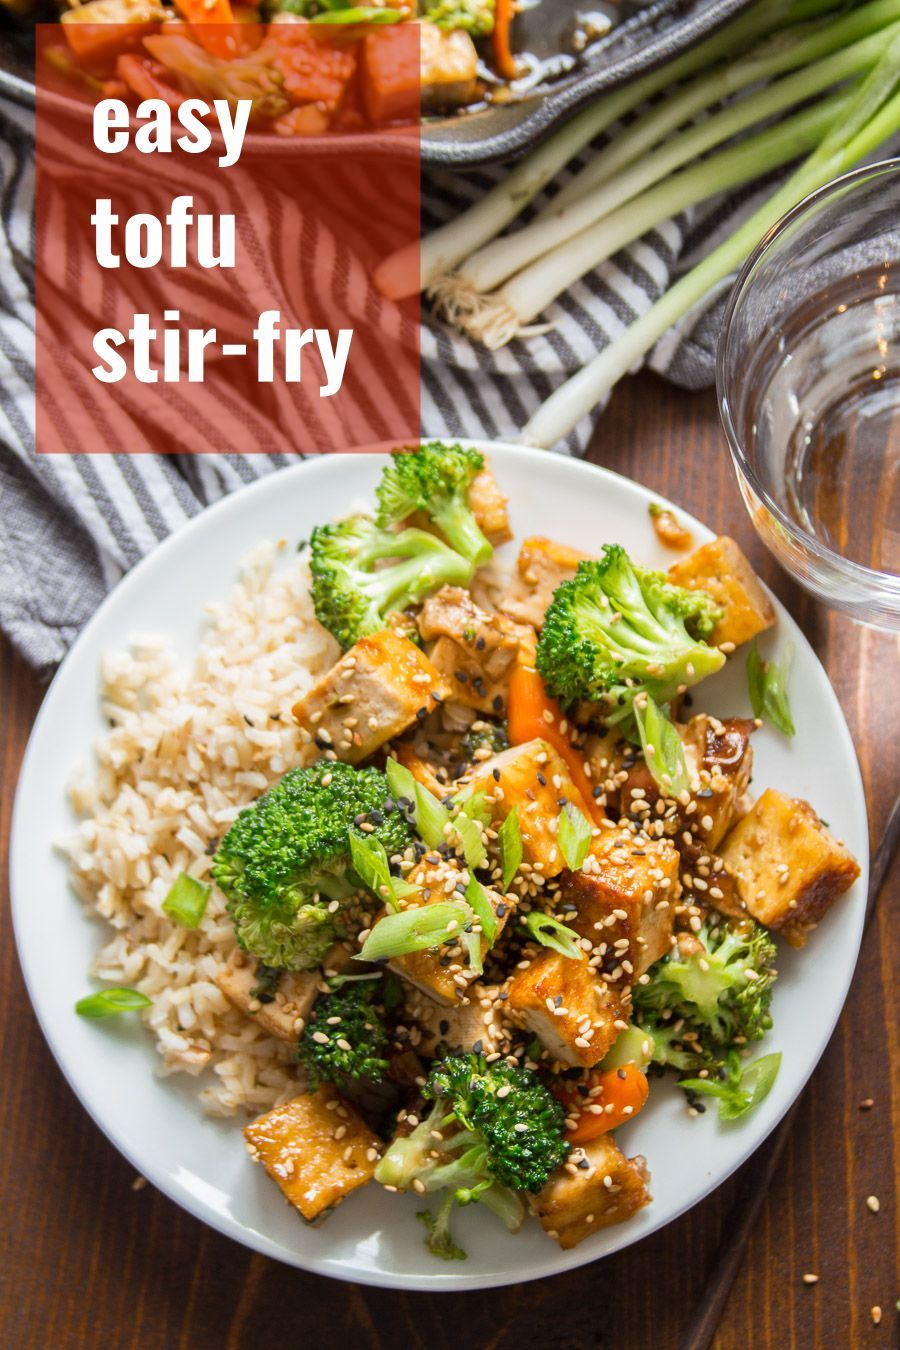 This Chinese Inspired Tofu Stir Fry Is Super Easy To Make And Tastes Better Than Takeout And Can B Tofu Stir Fry Easy Chicken Recipes Vegan Dinner Recipes Easy